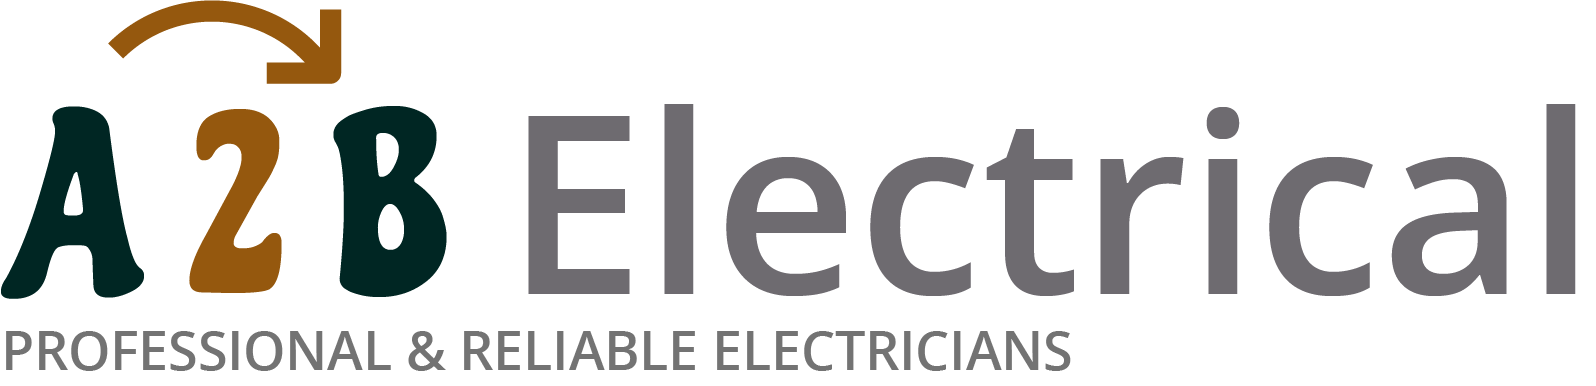 If you have electrical wiring problems in Stanmore, we can provide an electrician to have a look for you.